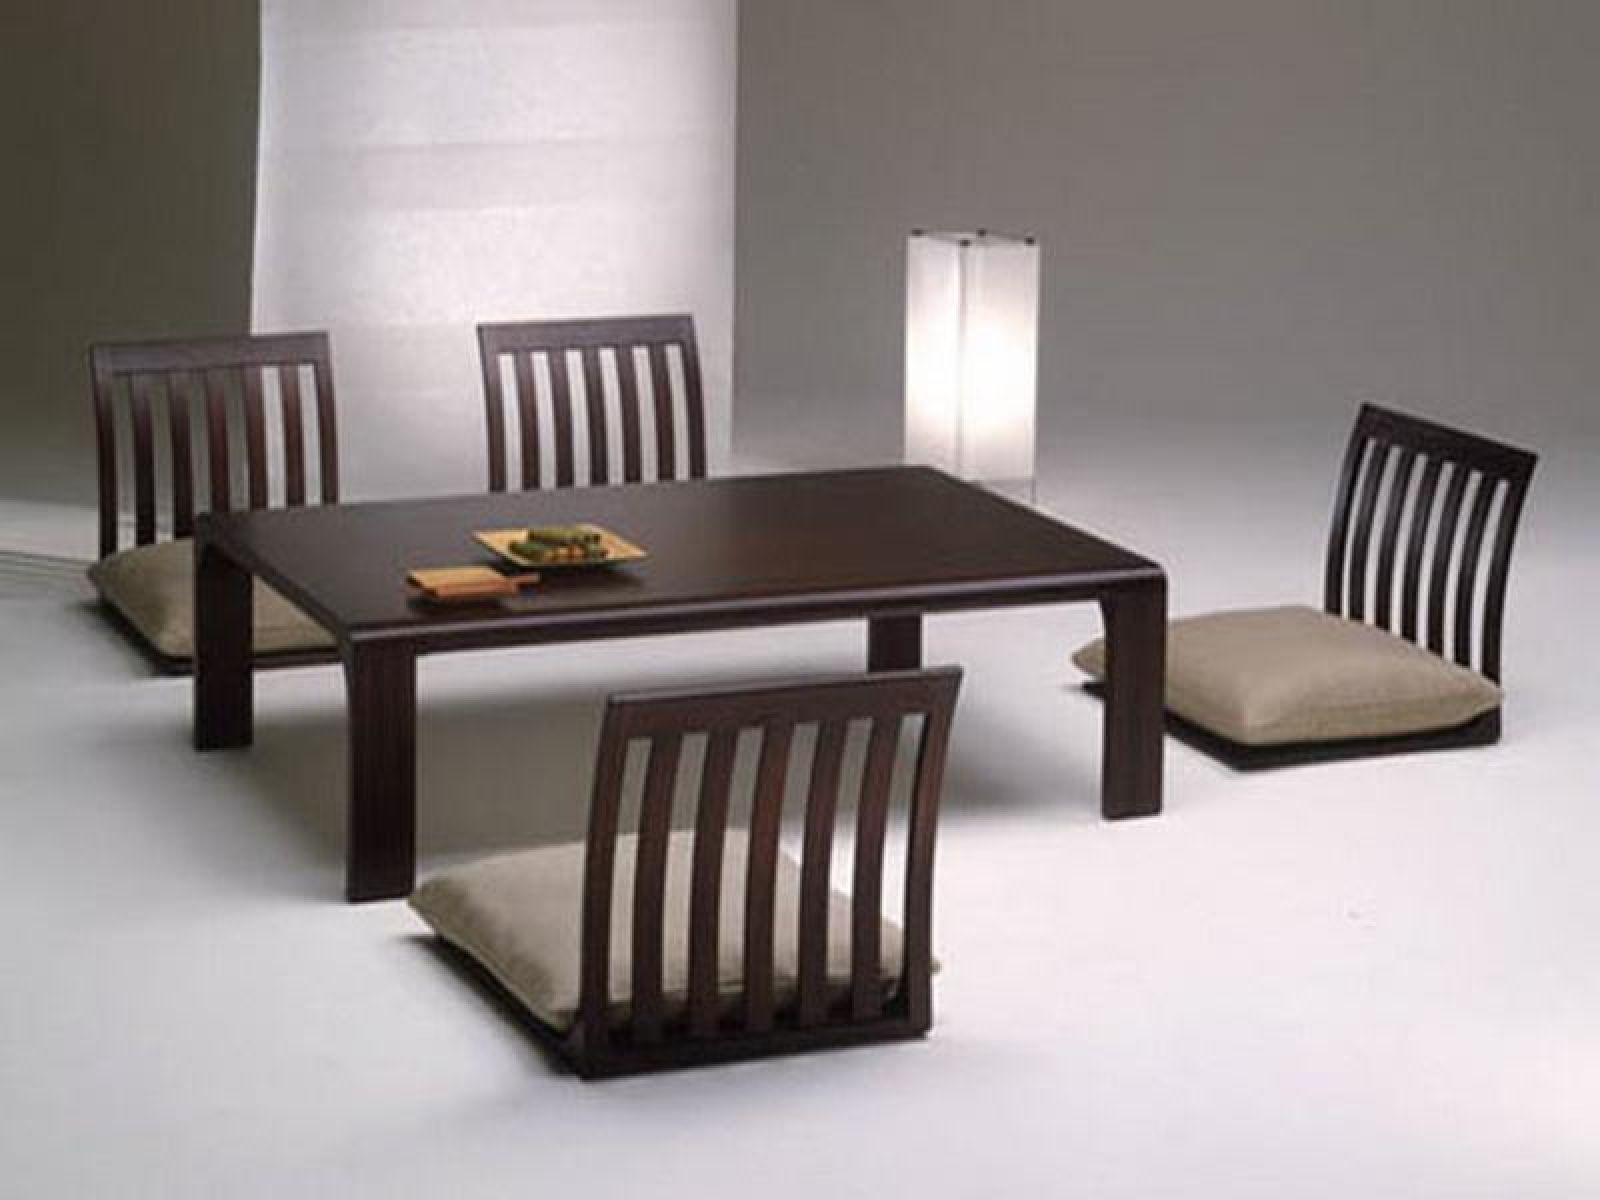 Japanese style dining table philippines renos pinterest japanese style dining table philippines geotapseo Image collections